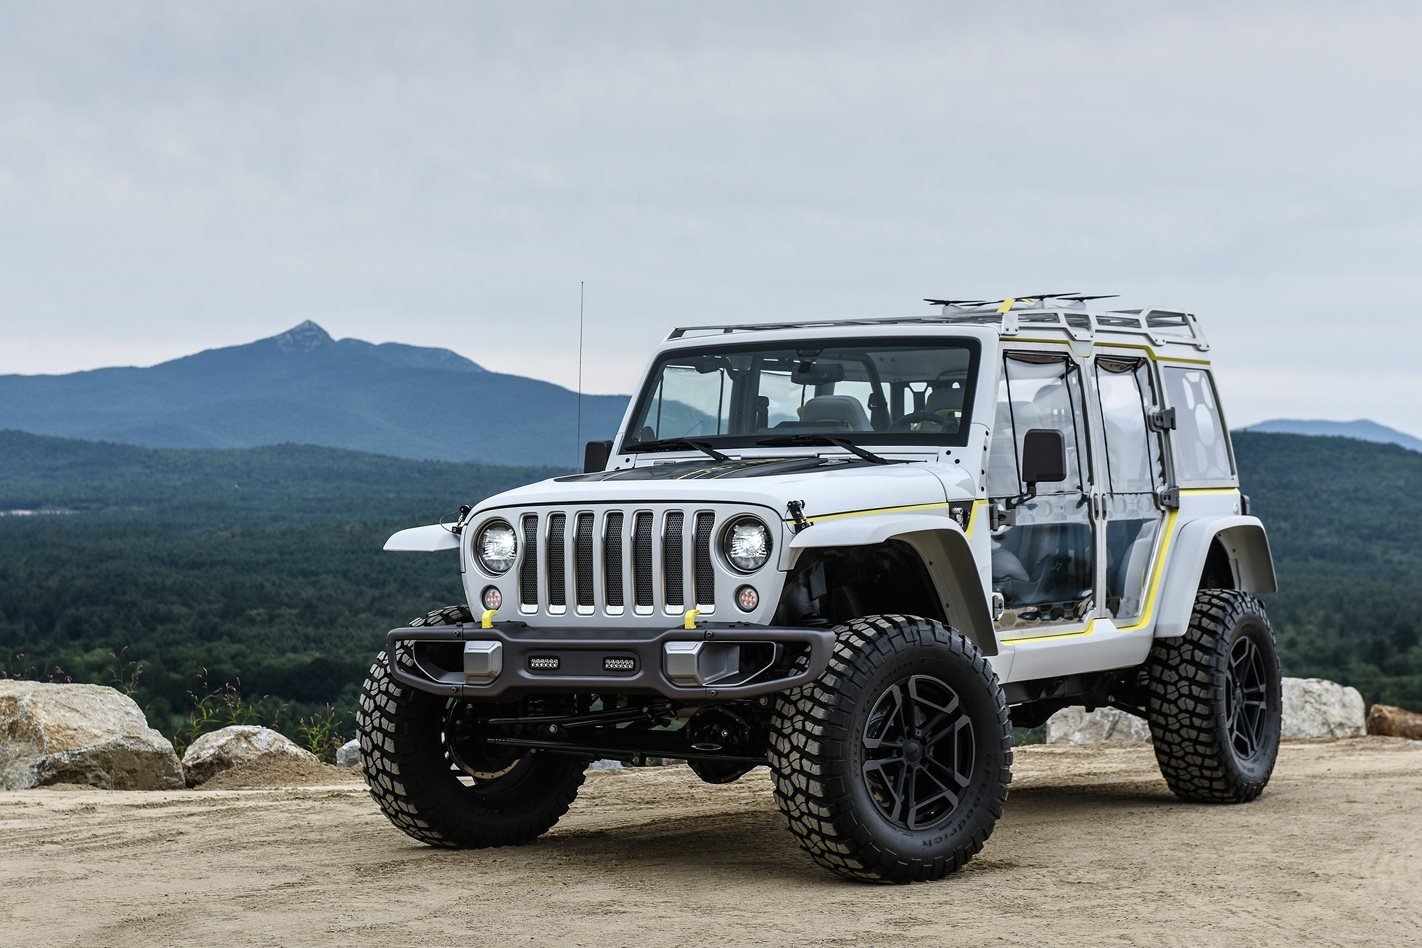 2019 Jeep Safari concept